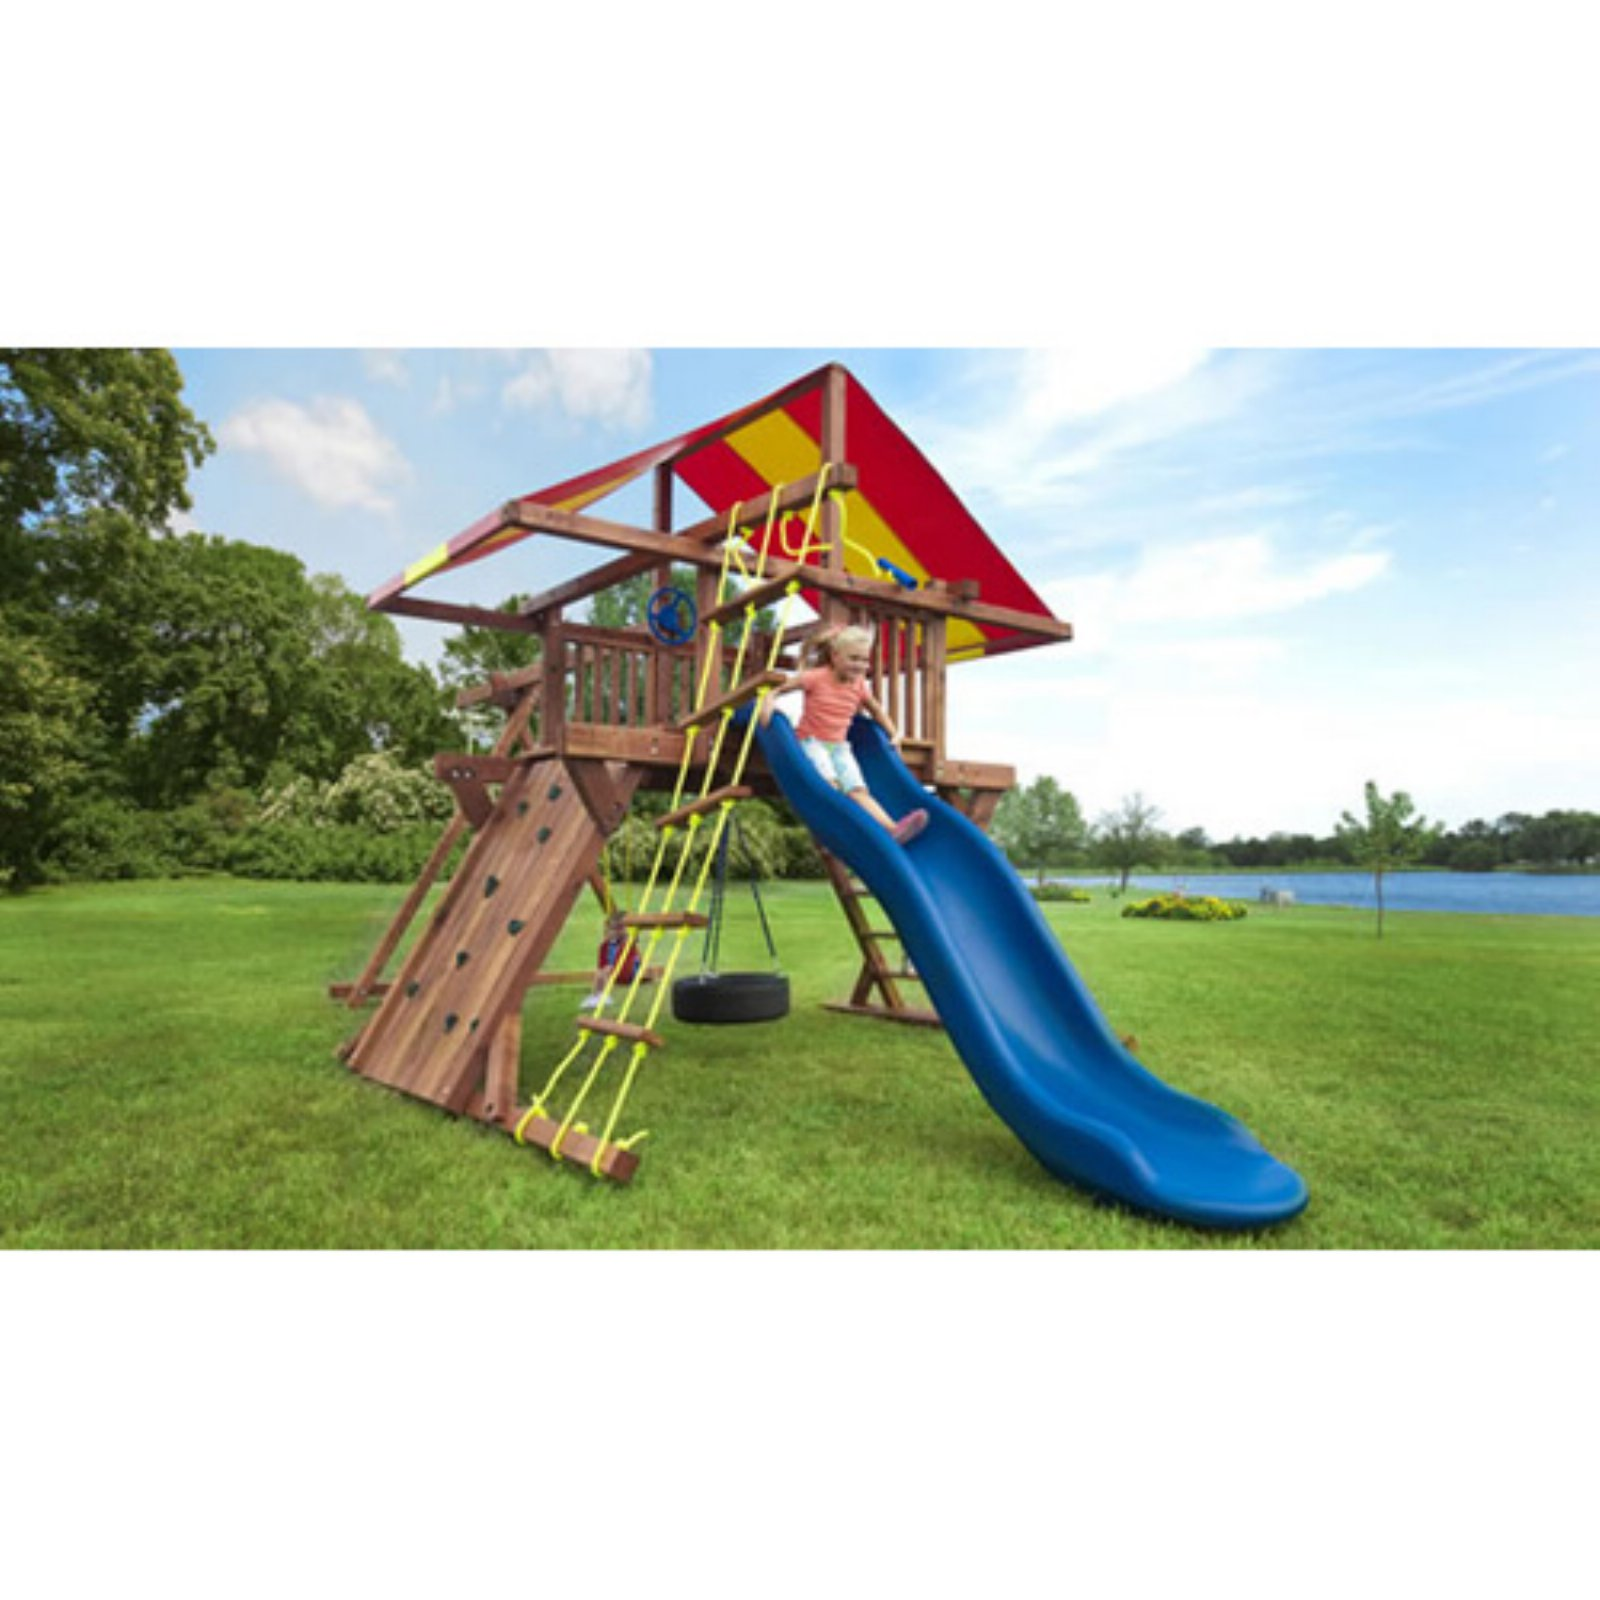 Kids Creations Pot O Gold Redwood Swing Set